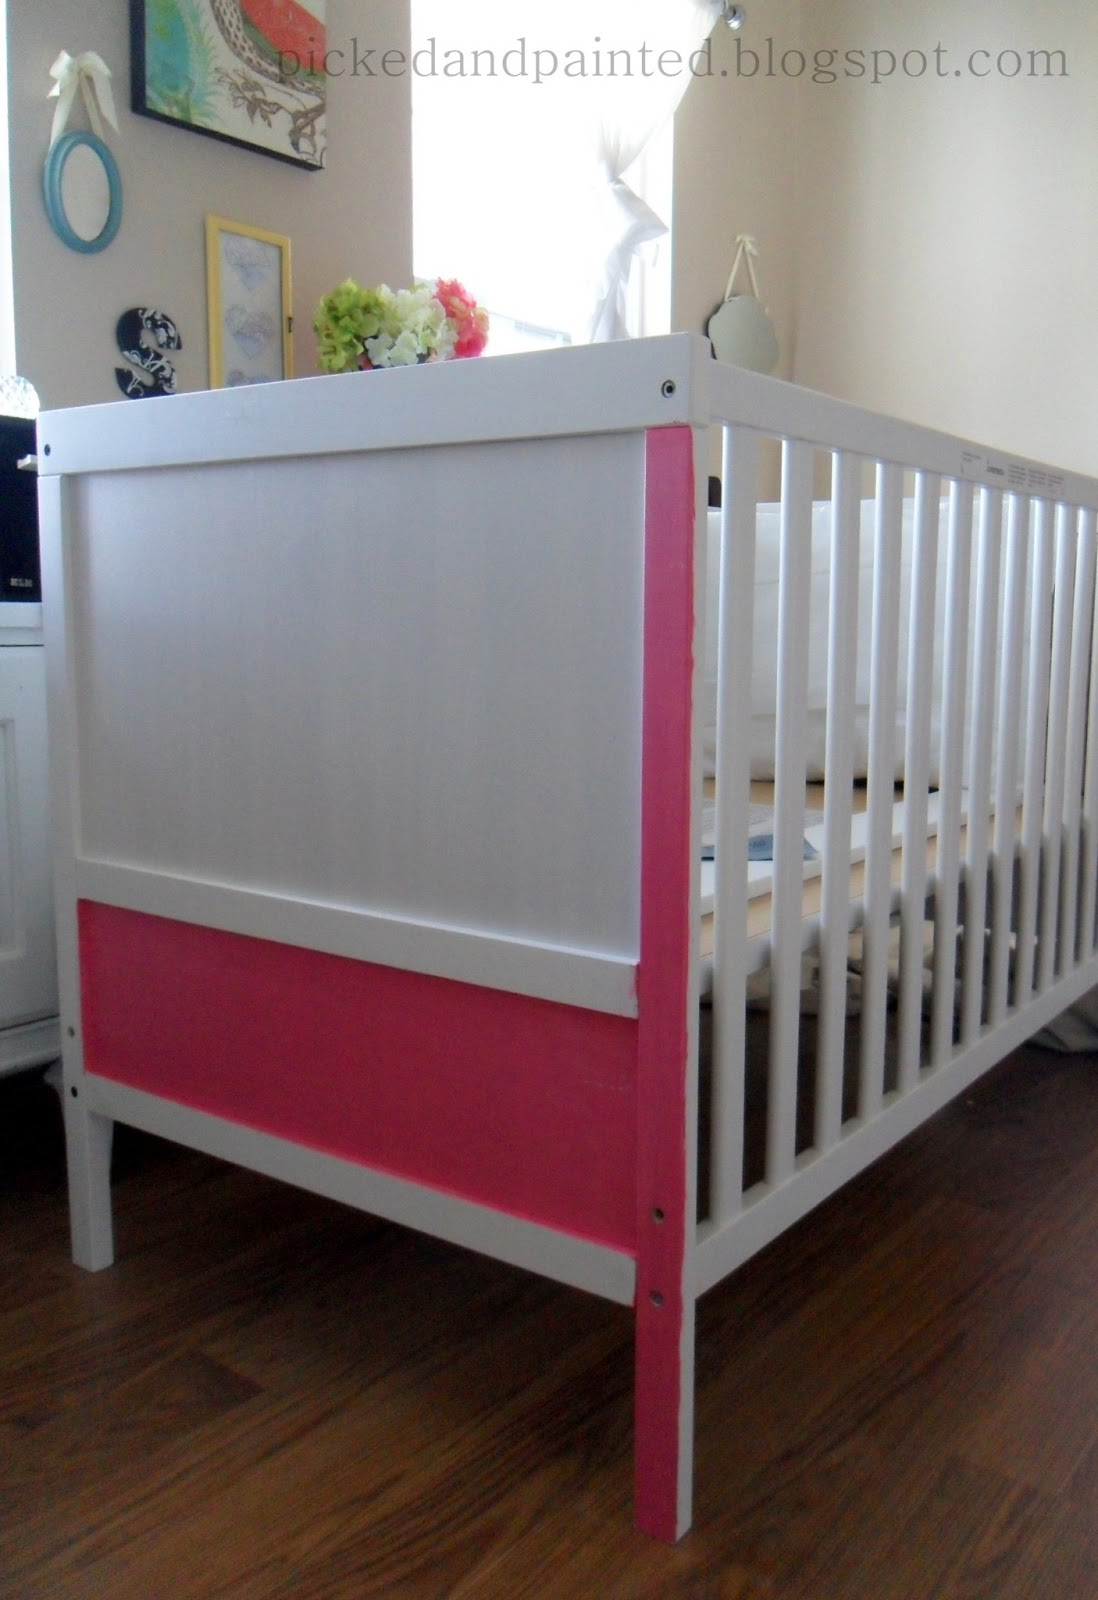 Amanda Was Sweet Enough To Send Me A Few Photos She Took Most Of You Will Probably Wonder Why Someone Would Want Paint Crib Pink Not